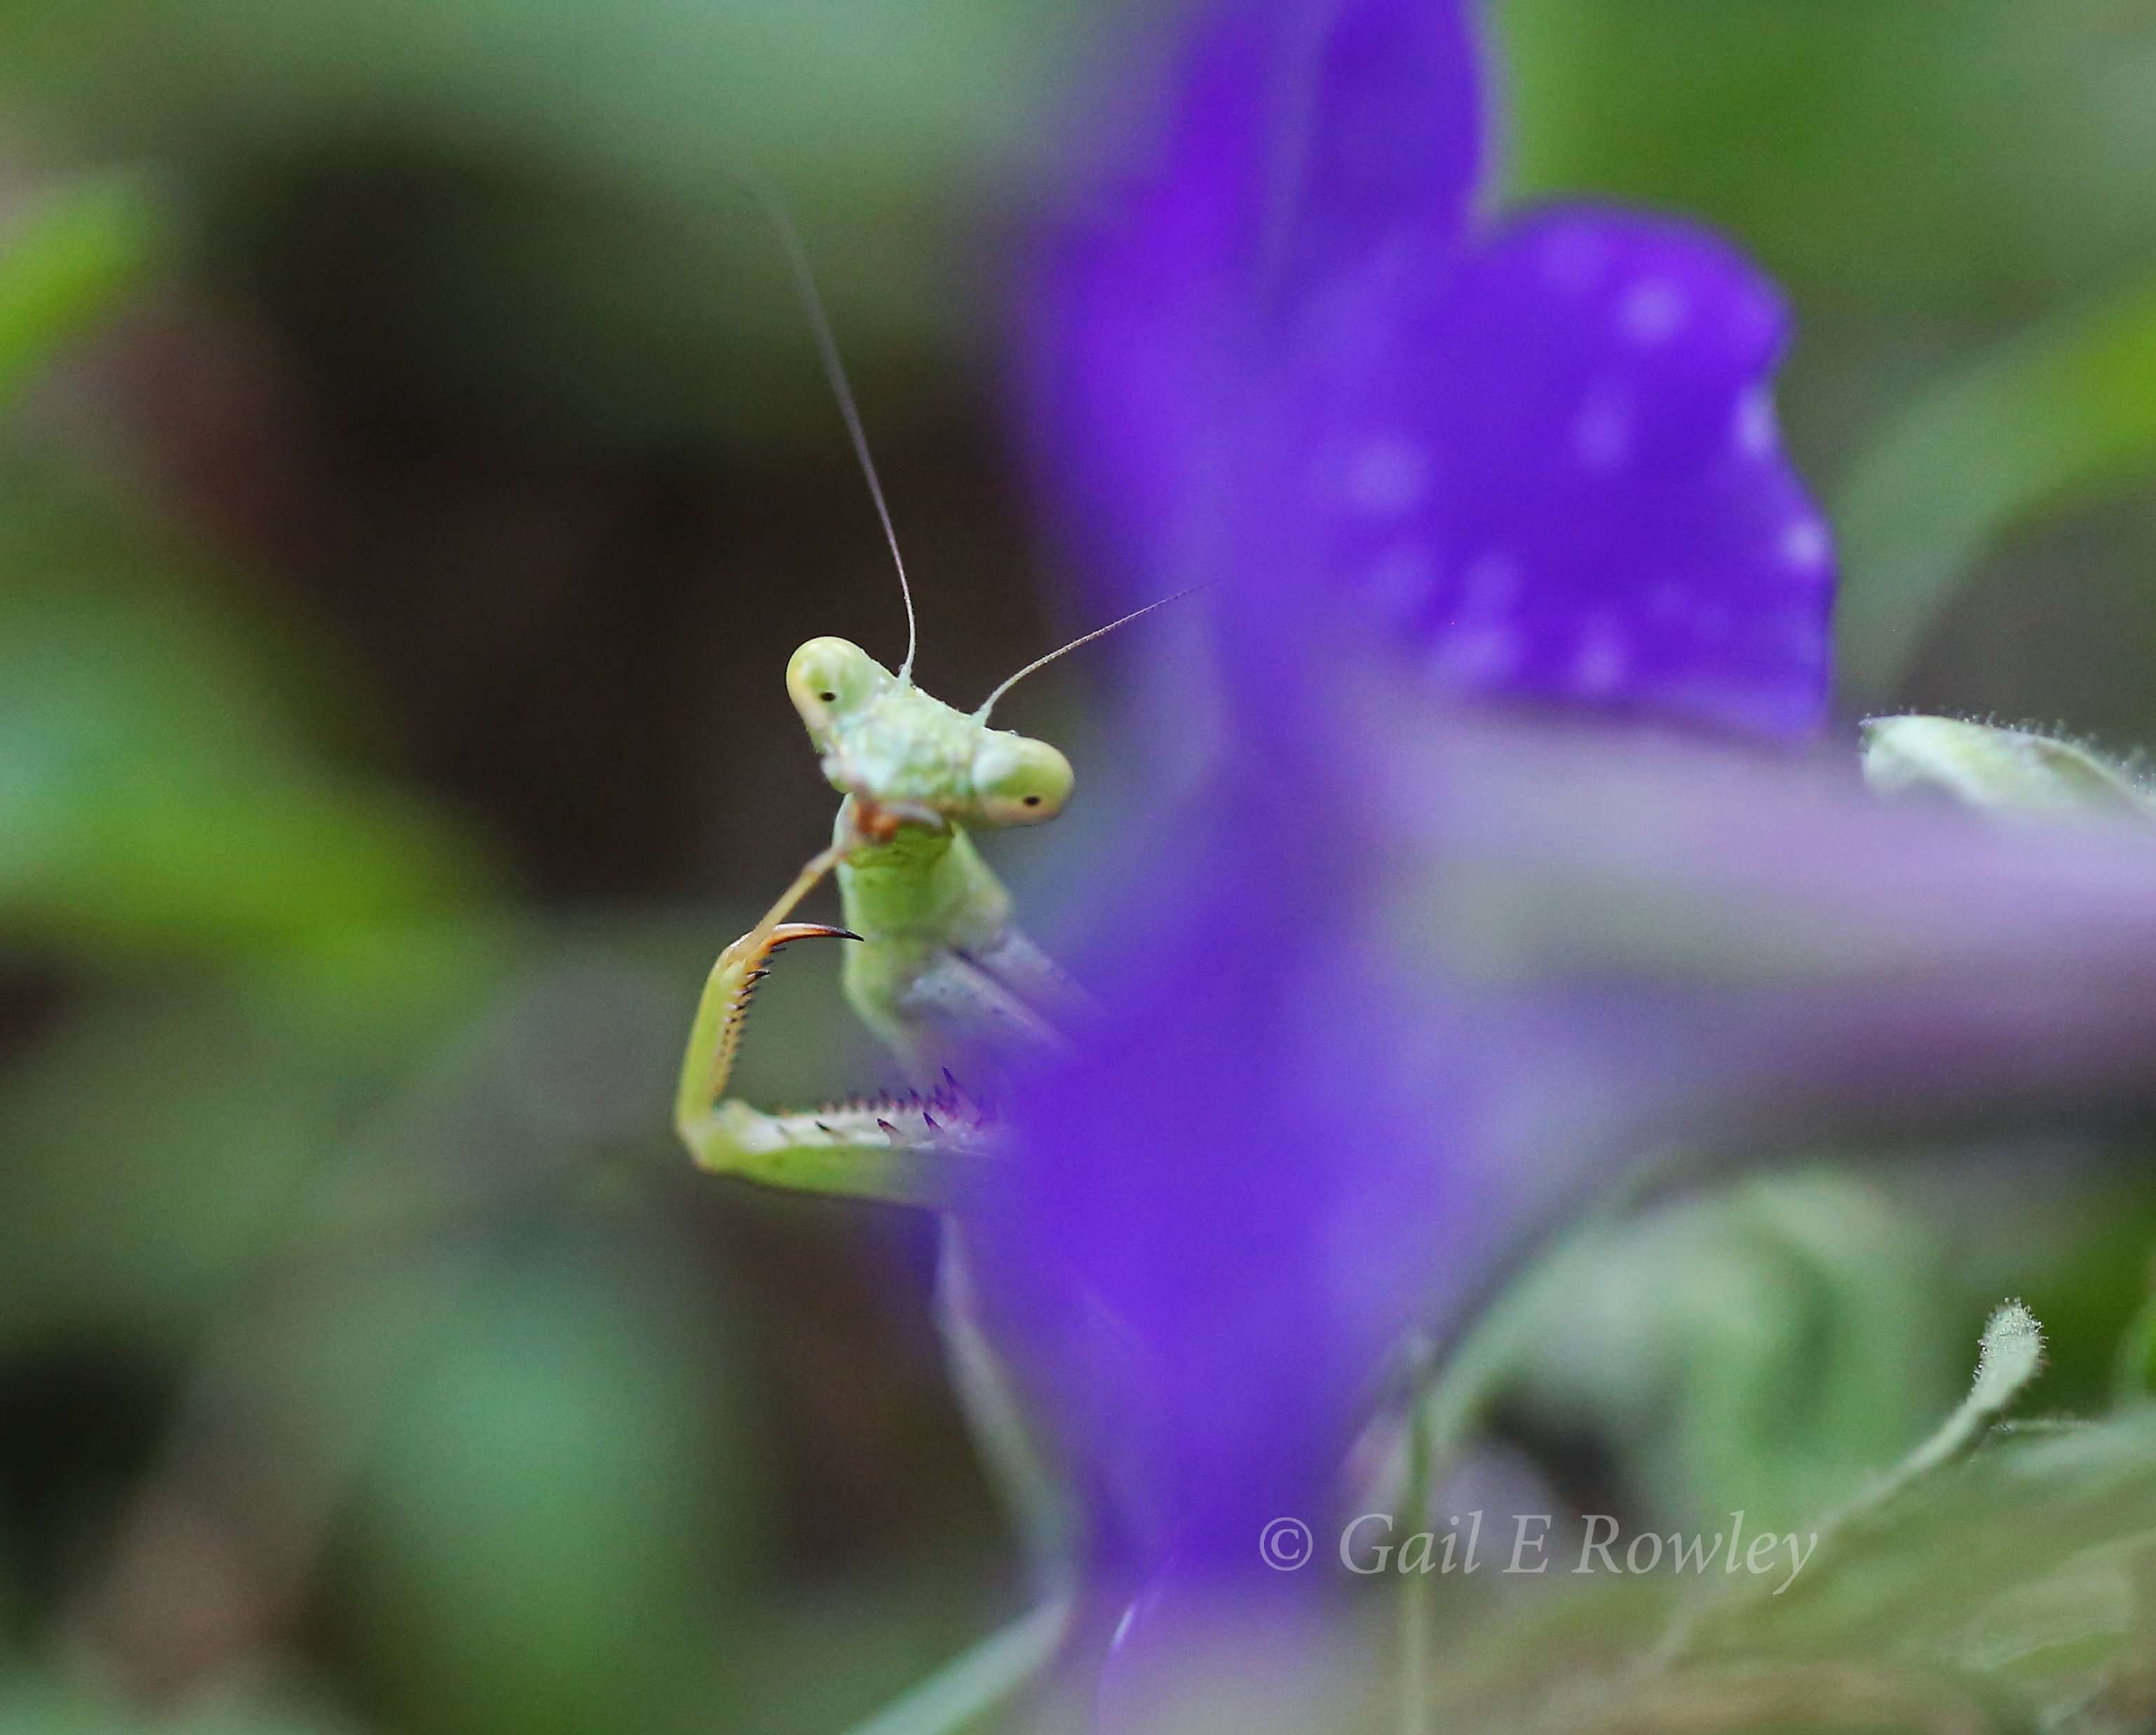 Immature Praying Mantis - Green photo by Gail E Rowley Ozark Stream Photography